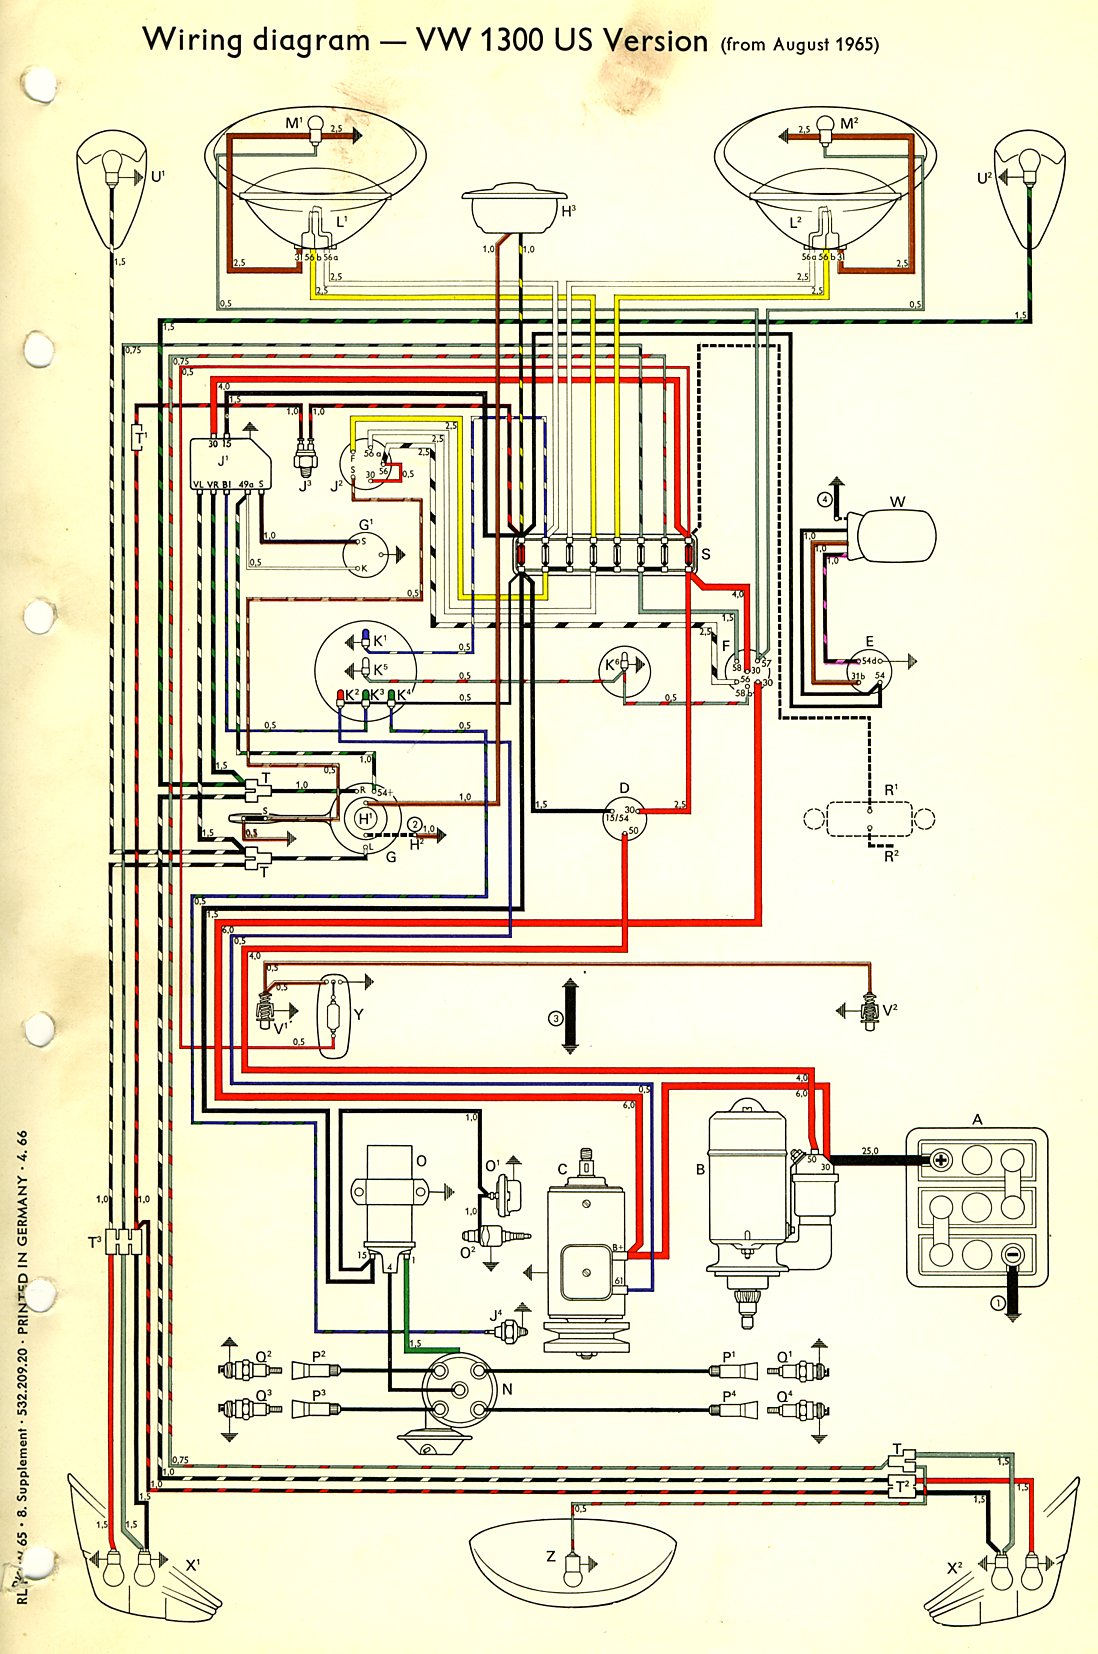 1965 1966 Vw Beetle 1300 Wiring Diagram Us Version Diagrams Archives Page 2 Of 12 Binatanicom Thesamba Com Type 1 Rh